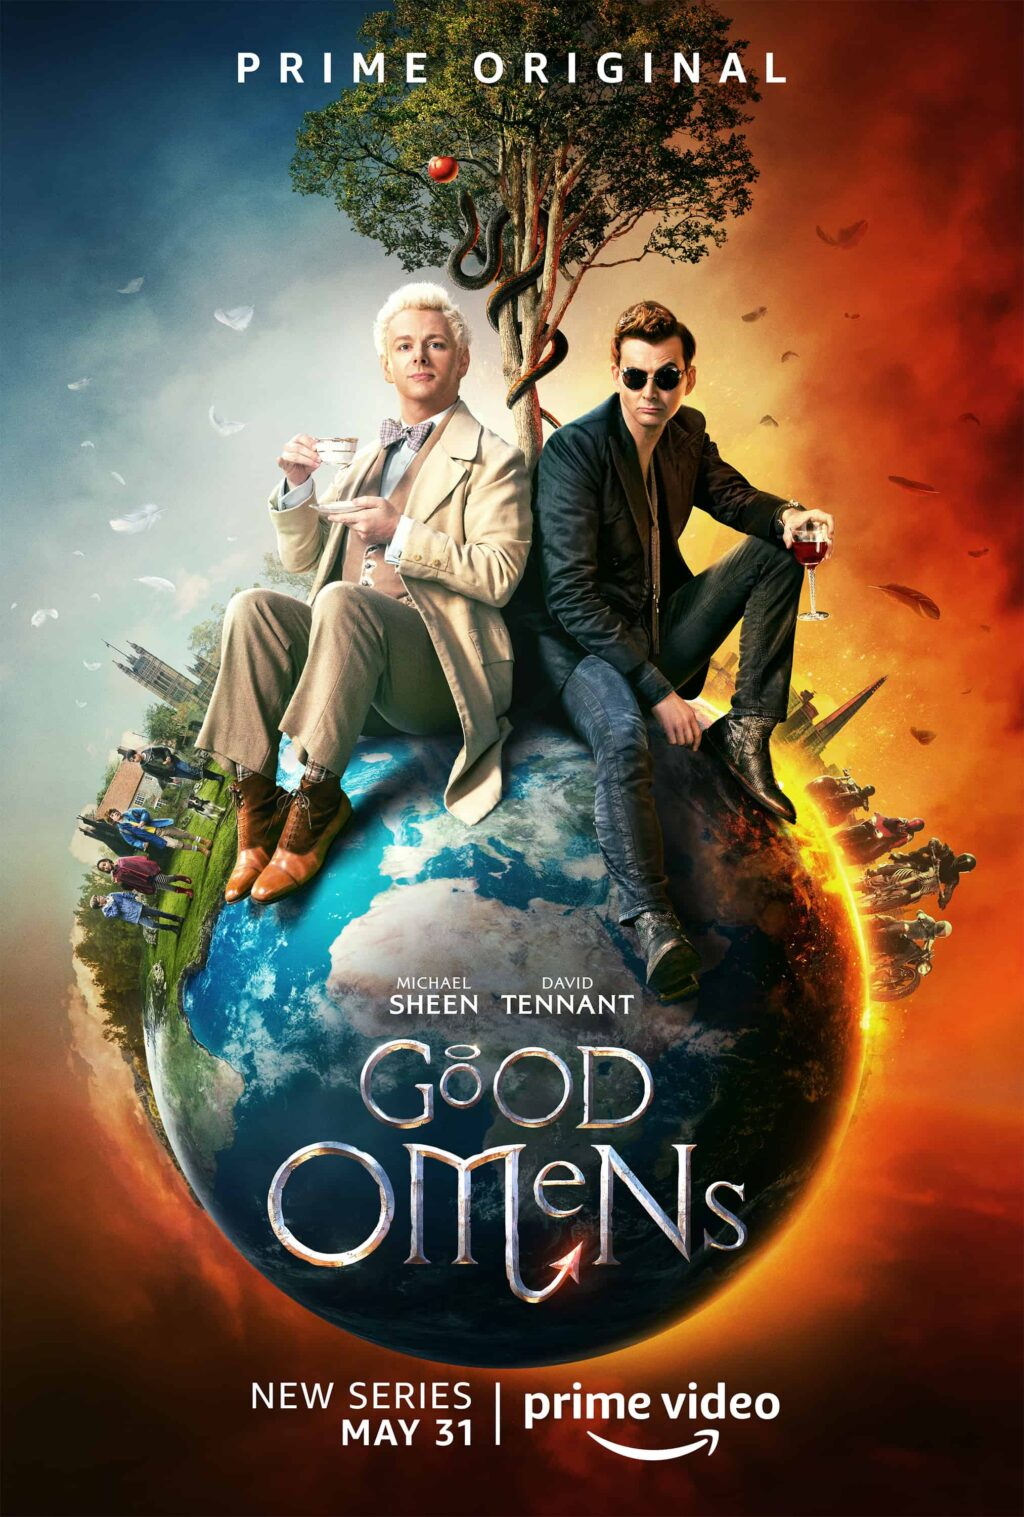 Good Omens Poster 1024x1517 - Trailer for GOOD OMENS Introduces an Odd Couple from Hell—And Heaven